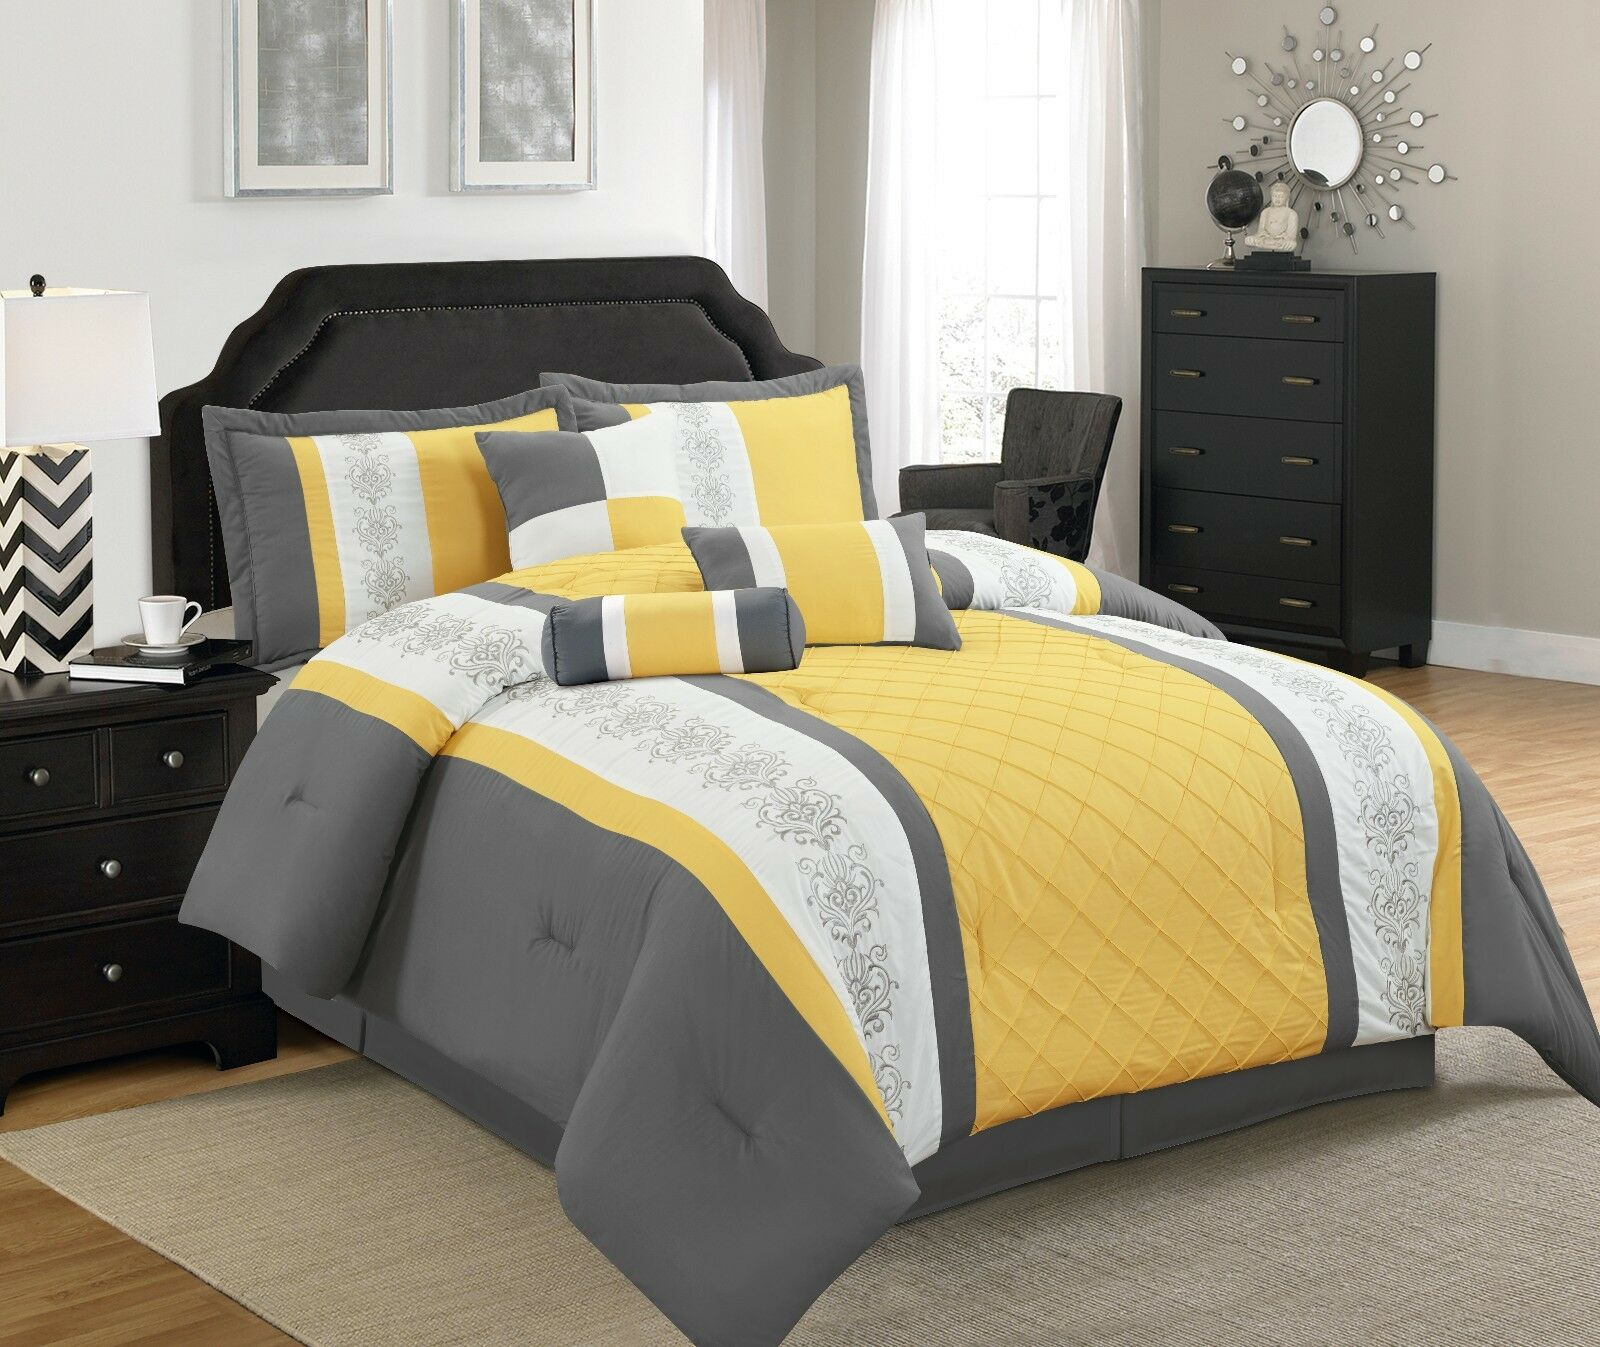 7 pcs Comforter Set with Embroiderot Design  Twin, Full, Queen, King & Cal King